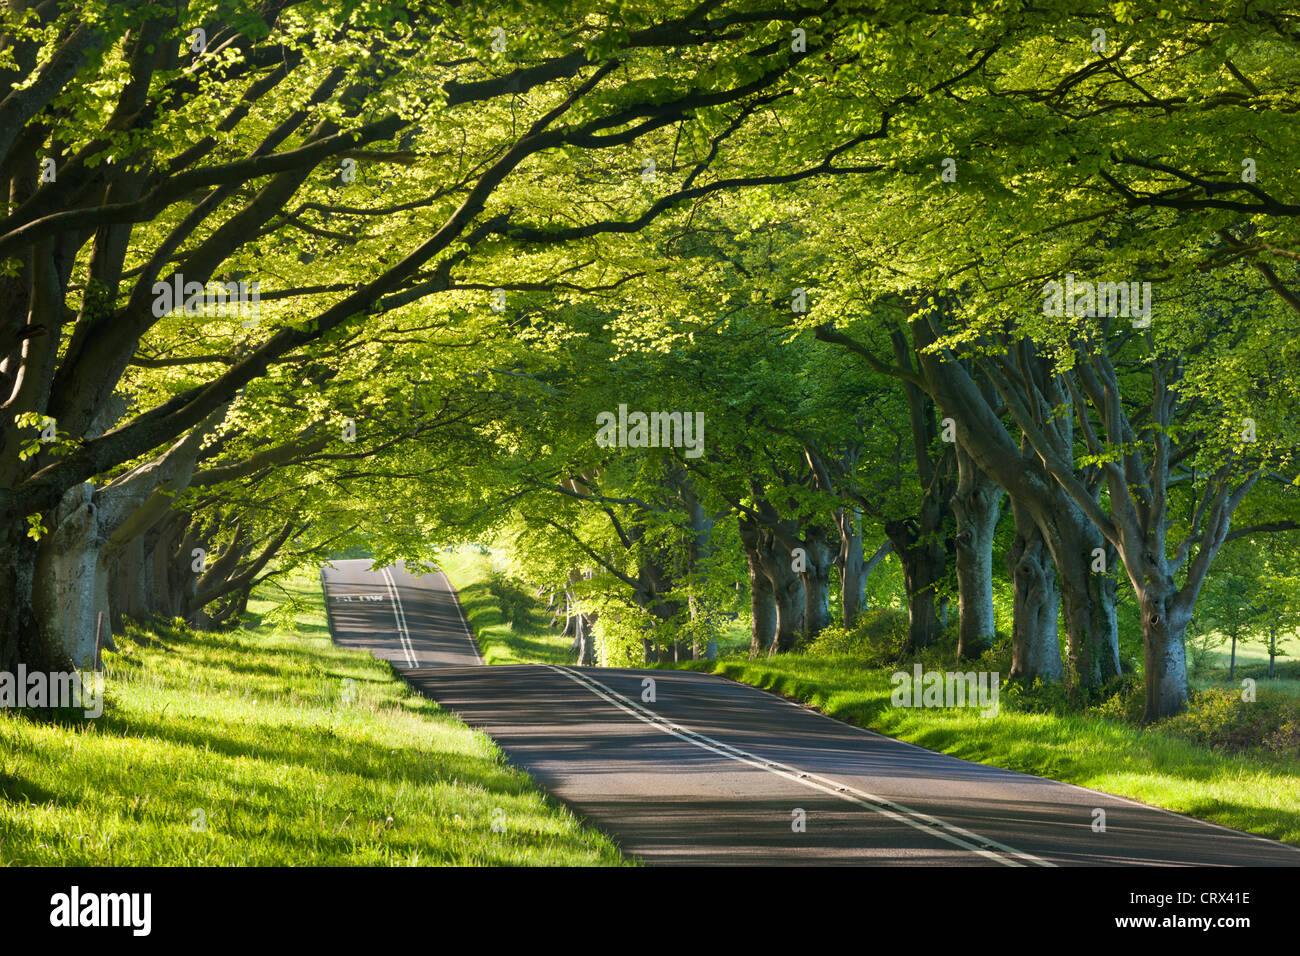 Beech tree lined road in springtime, Wimborne, Dorset, England. Spring (May) 2012. - Stock Image